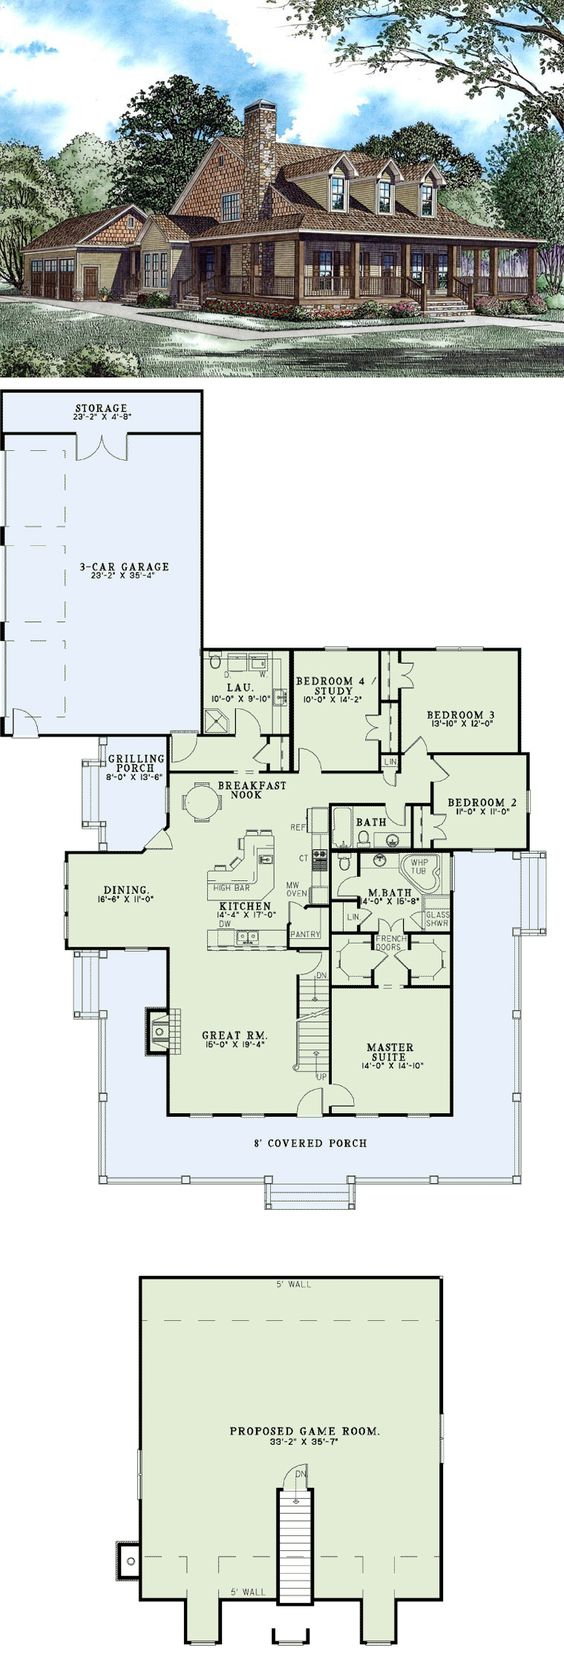 #Country #HomePlan 62207 | This beautiful country home offers a huge wrap-around front porch and has a side loading 3-car garage. The great room has a fireplace and is open to the kitchen. The kitchen features a large island bar, a walk-in pantry, breakfast nook, dining room and access to the grilling porch. The laundry room has a shower and toilet for more convenience. The master suite has 2 walk-in closets, and the master bathroom offers a corner whirlpool tub and a corner glass shower.